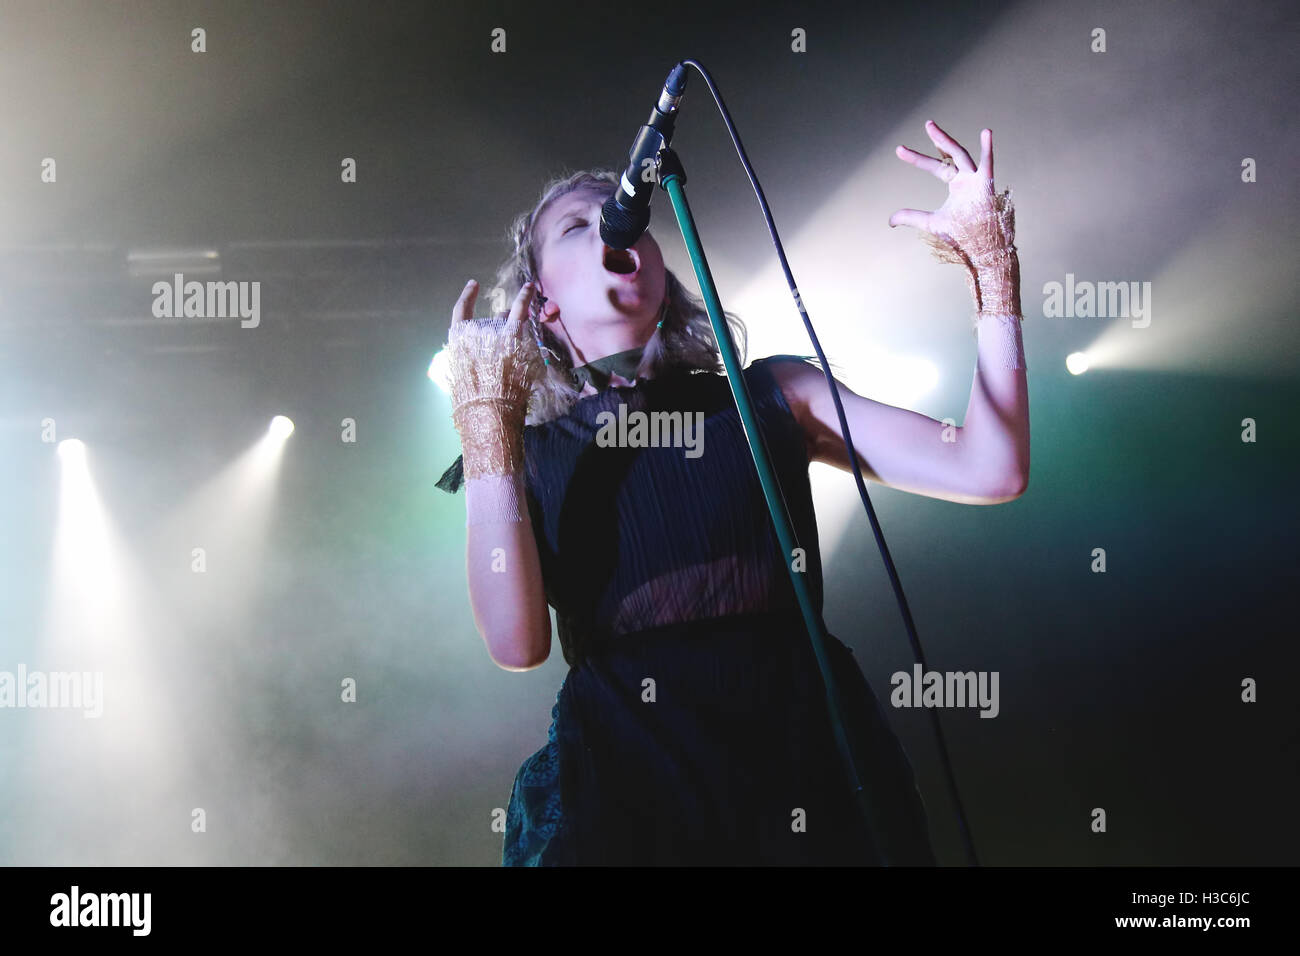 AURORA performs at Manchester's O2 Ritz. - Stock Image